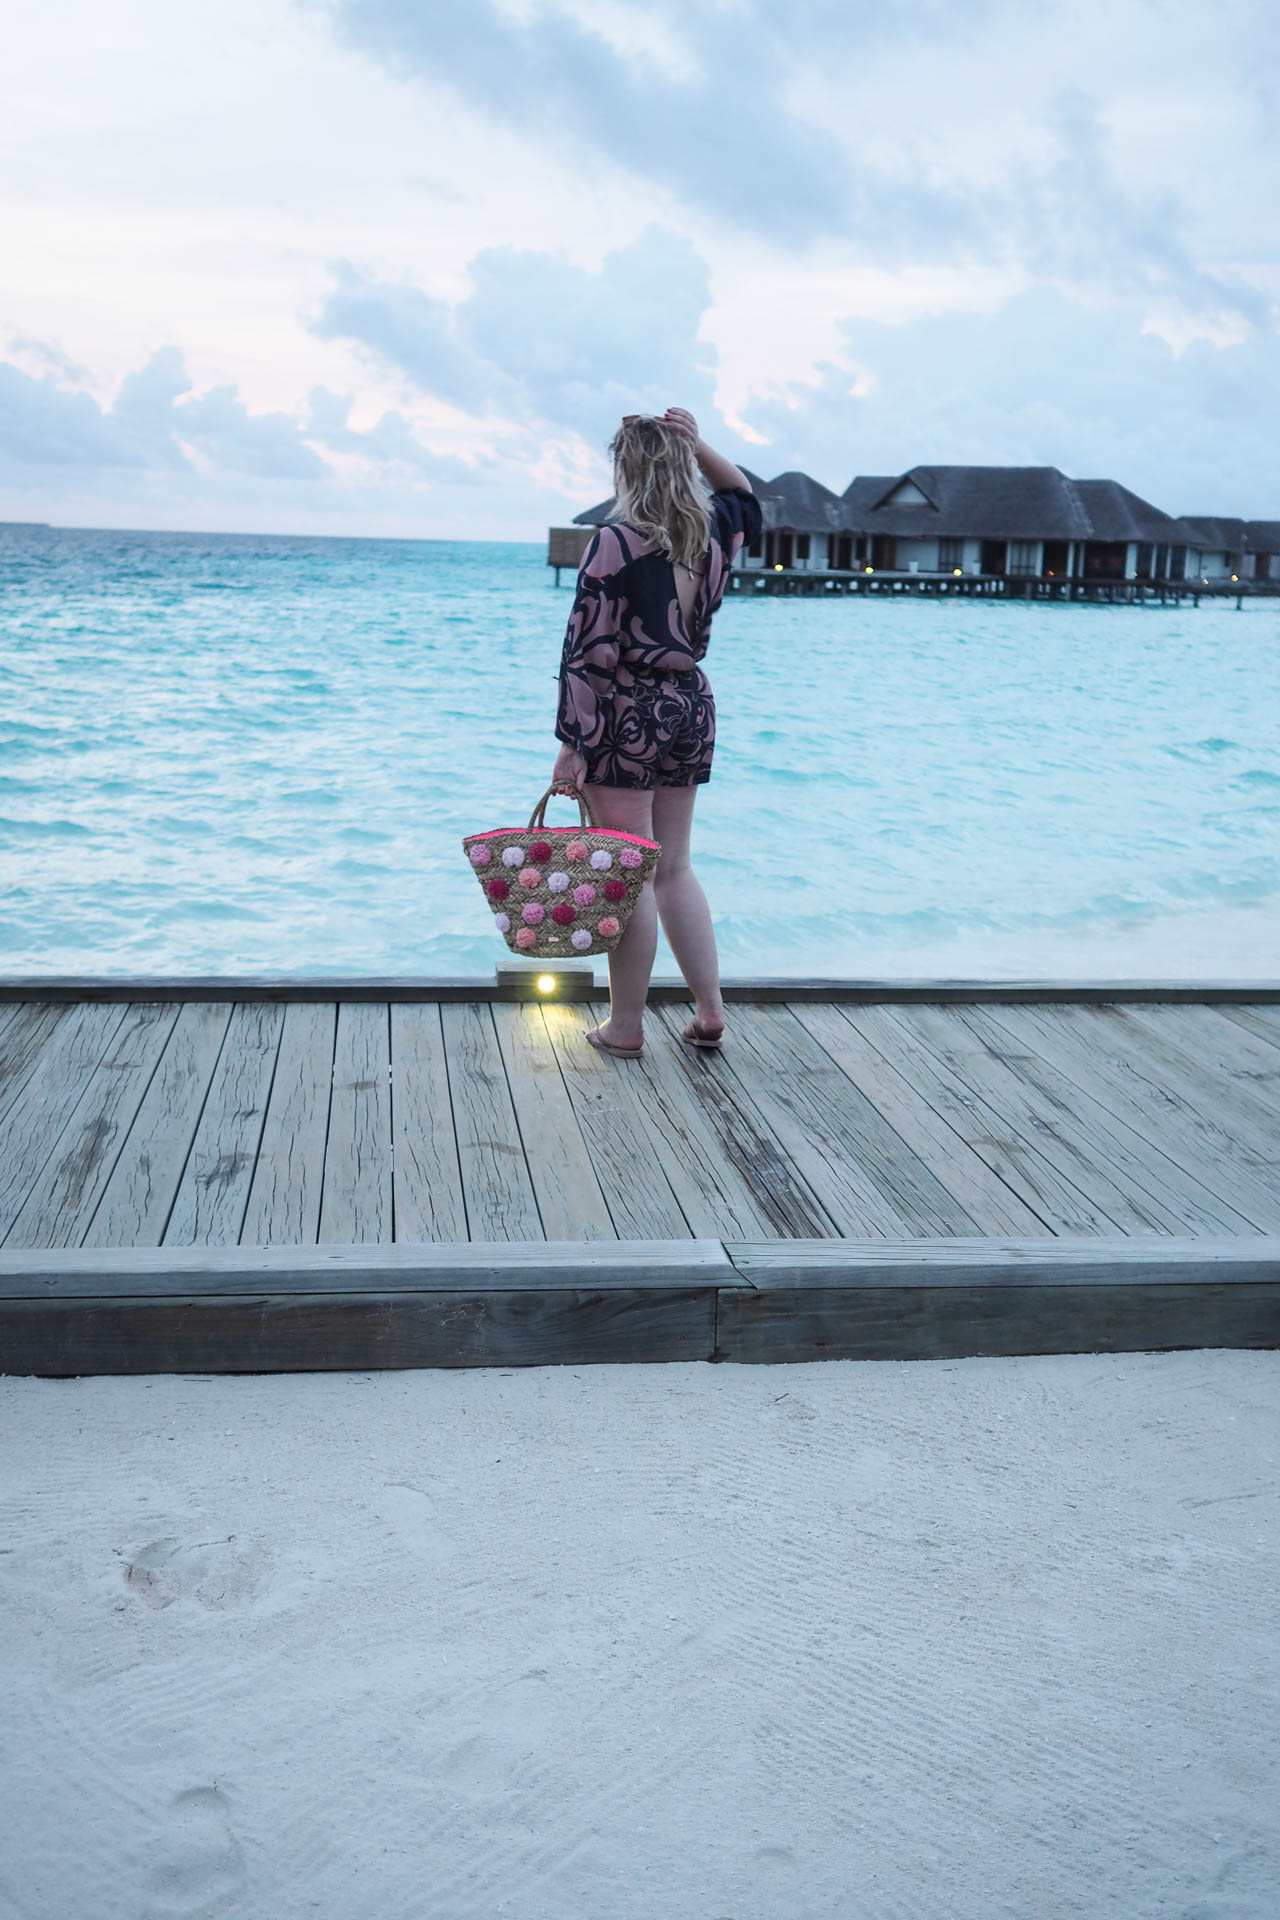 maldives for less, maldives on a budget